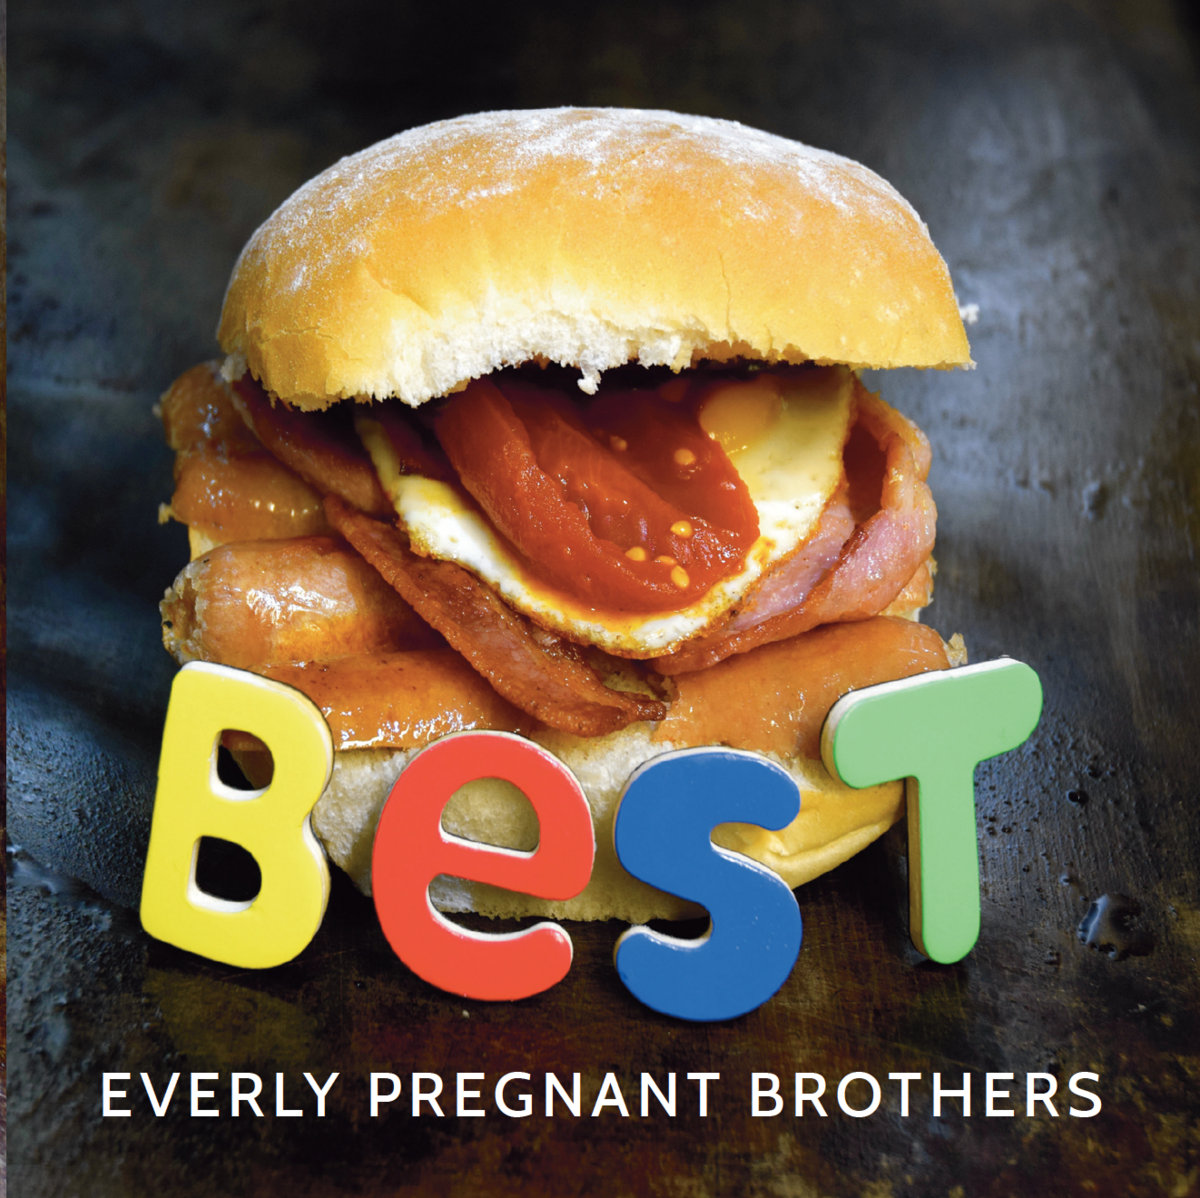 EVERLY PREGNANT BROTHERS CARELESS WINDOWS 7 X64 TREIBER